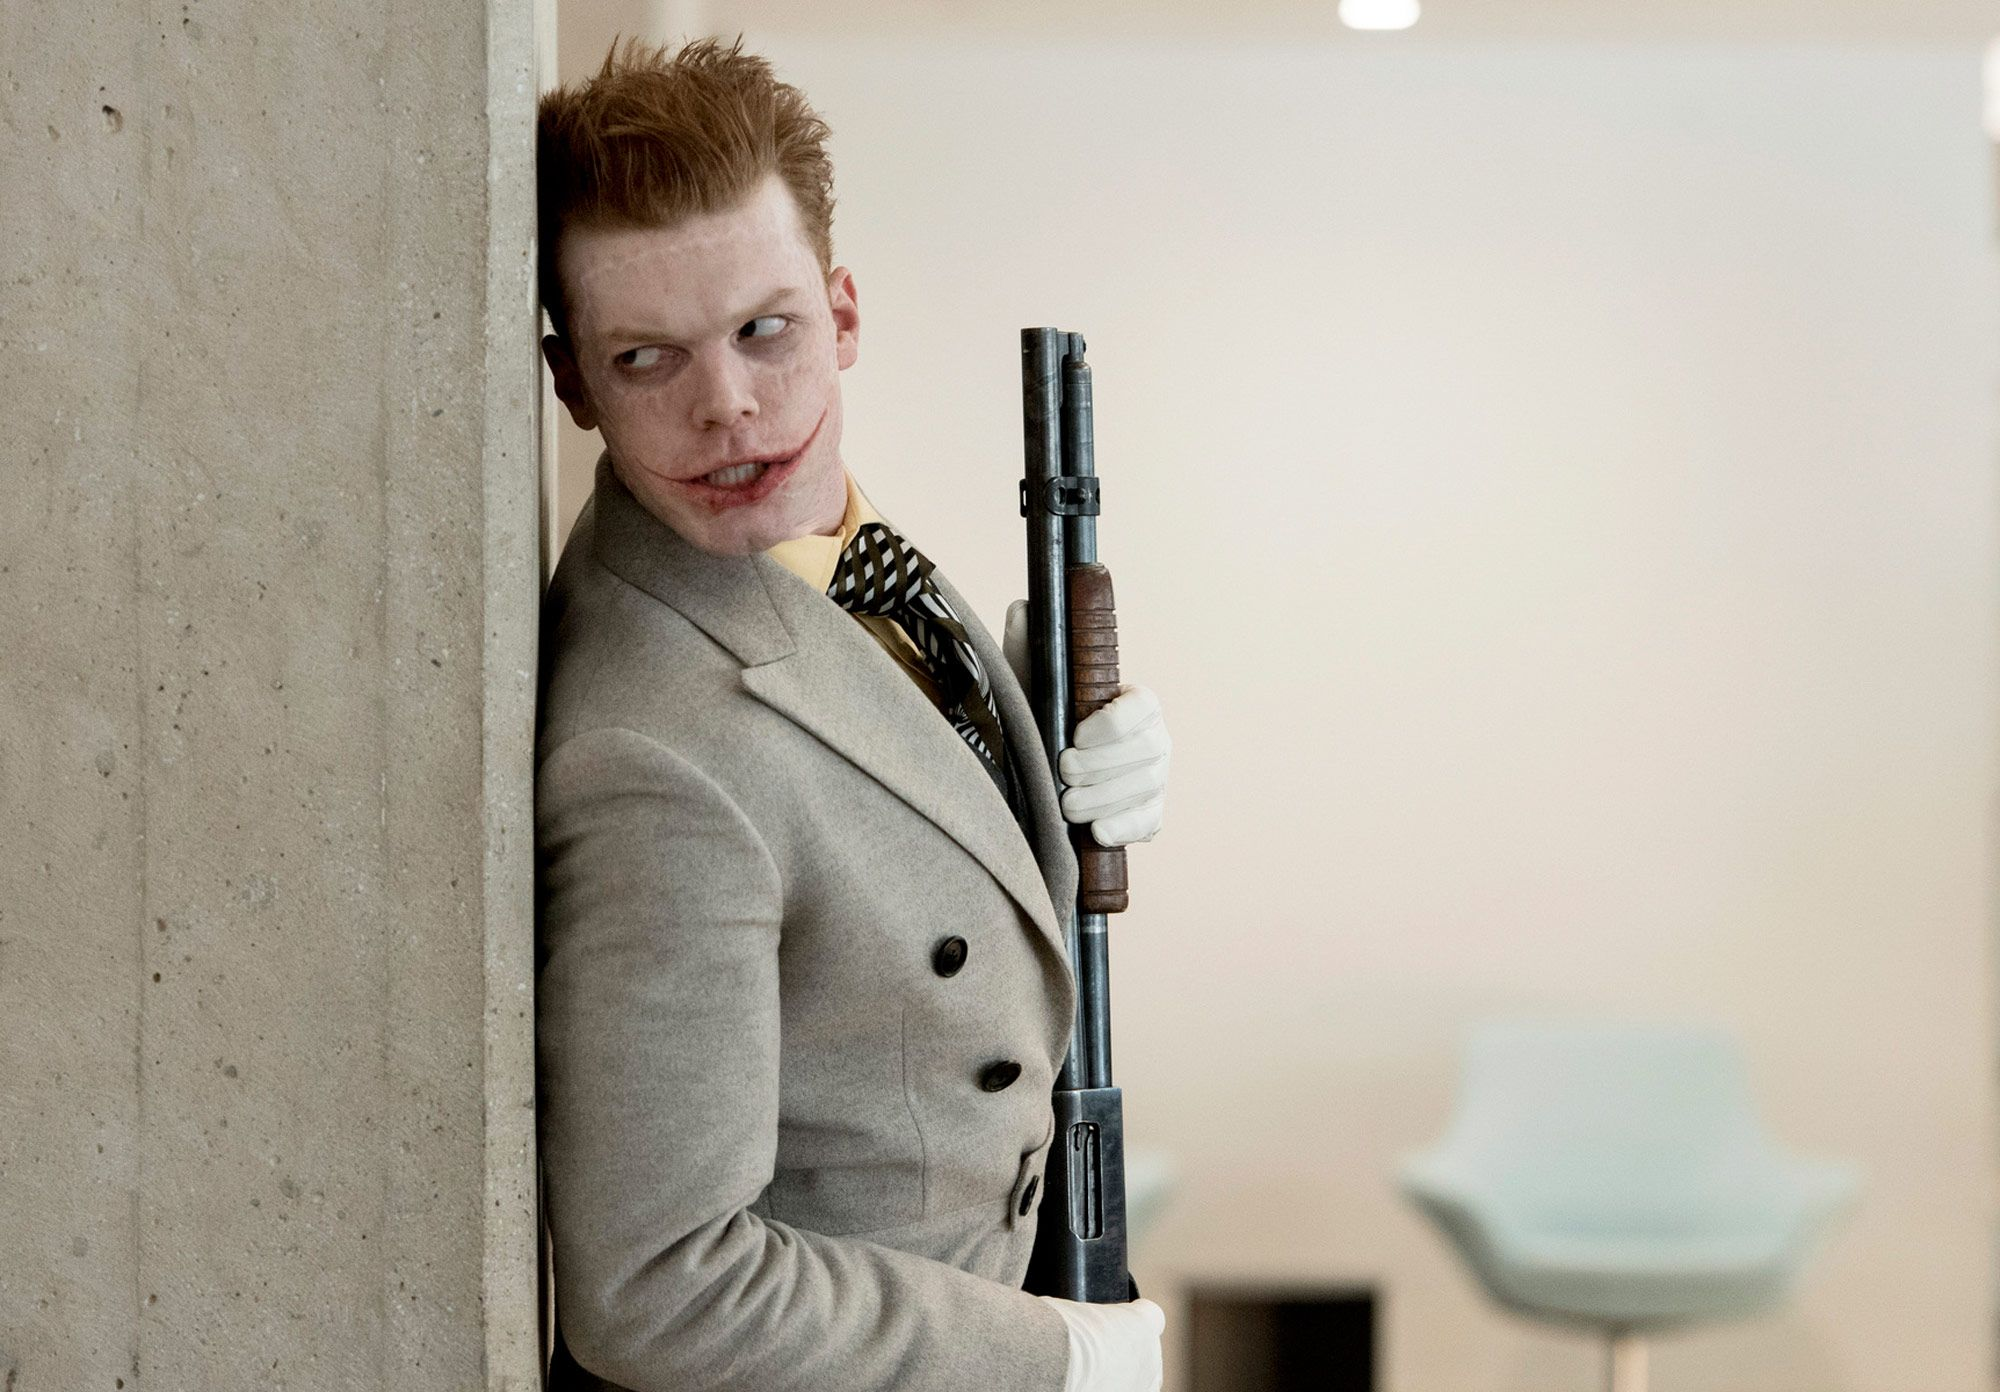 Gotham star Cameron Monaghan gives his verdict on Joaquin Phoenix's Joker